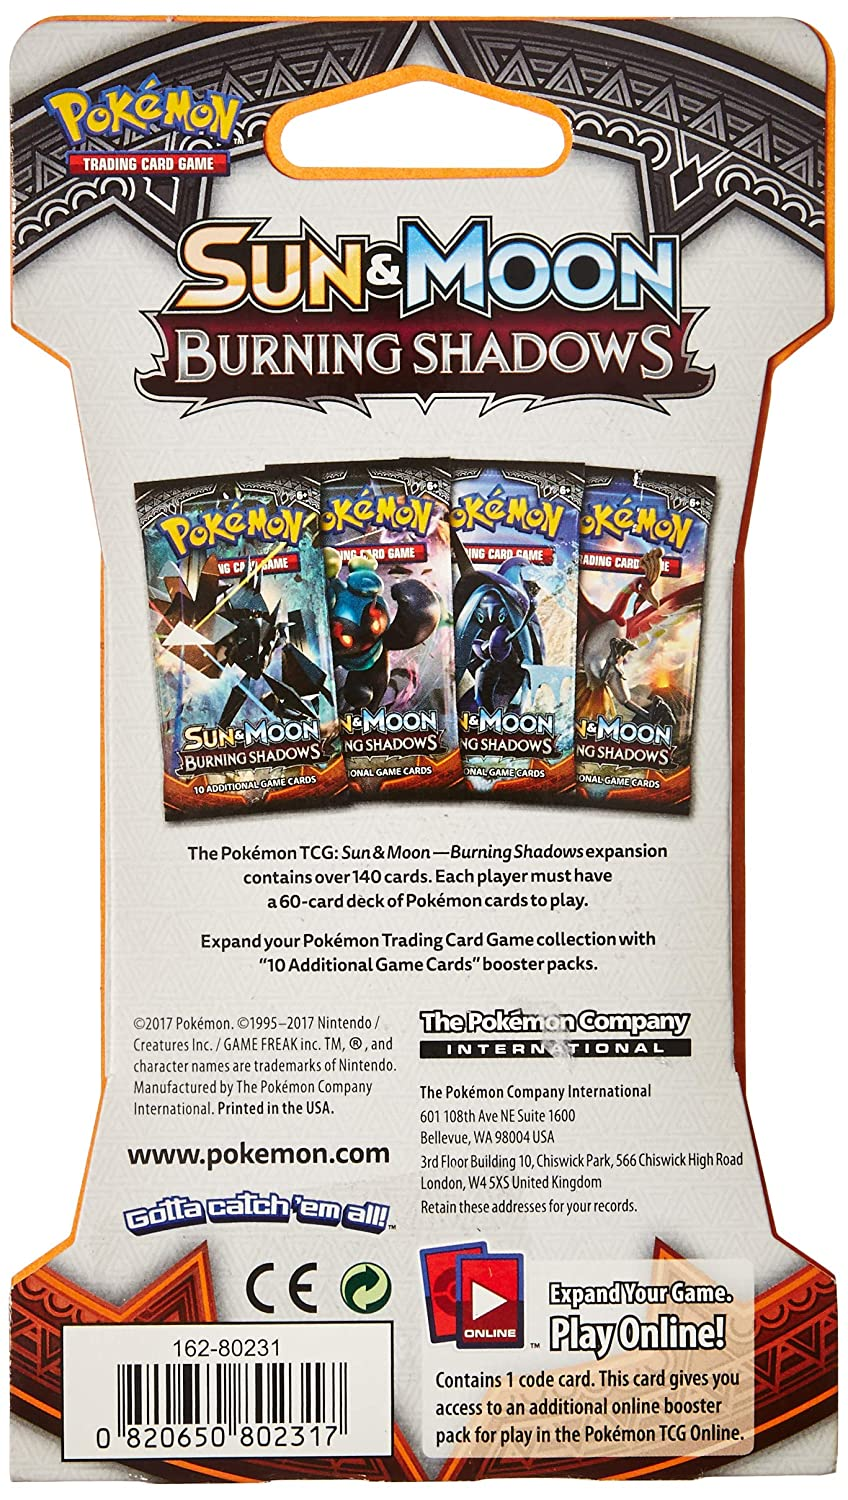 Pokemon TCG Blistered Booster Pack Containing 10 Cards with Over 140 New Cards to Collect 820650802317 Sun /& Moon Burning Shadows